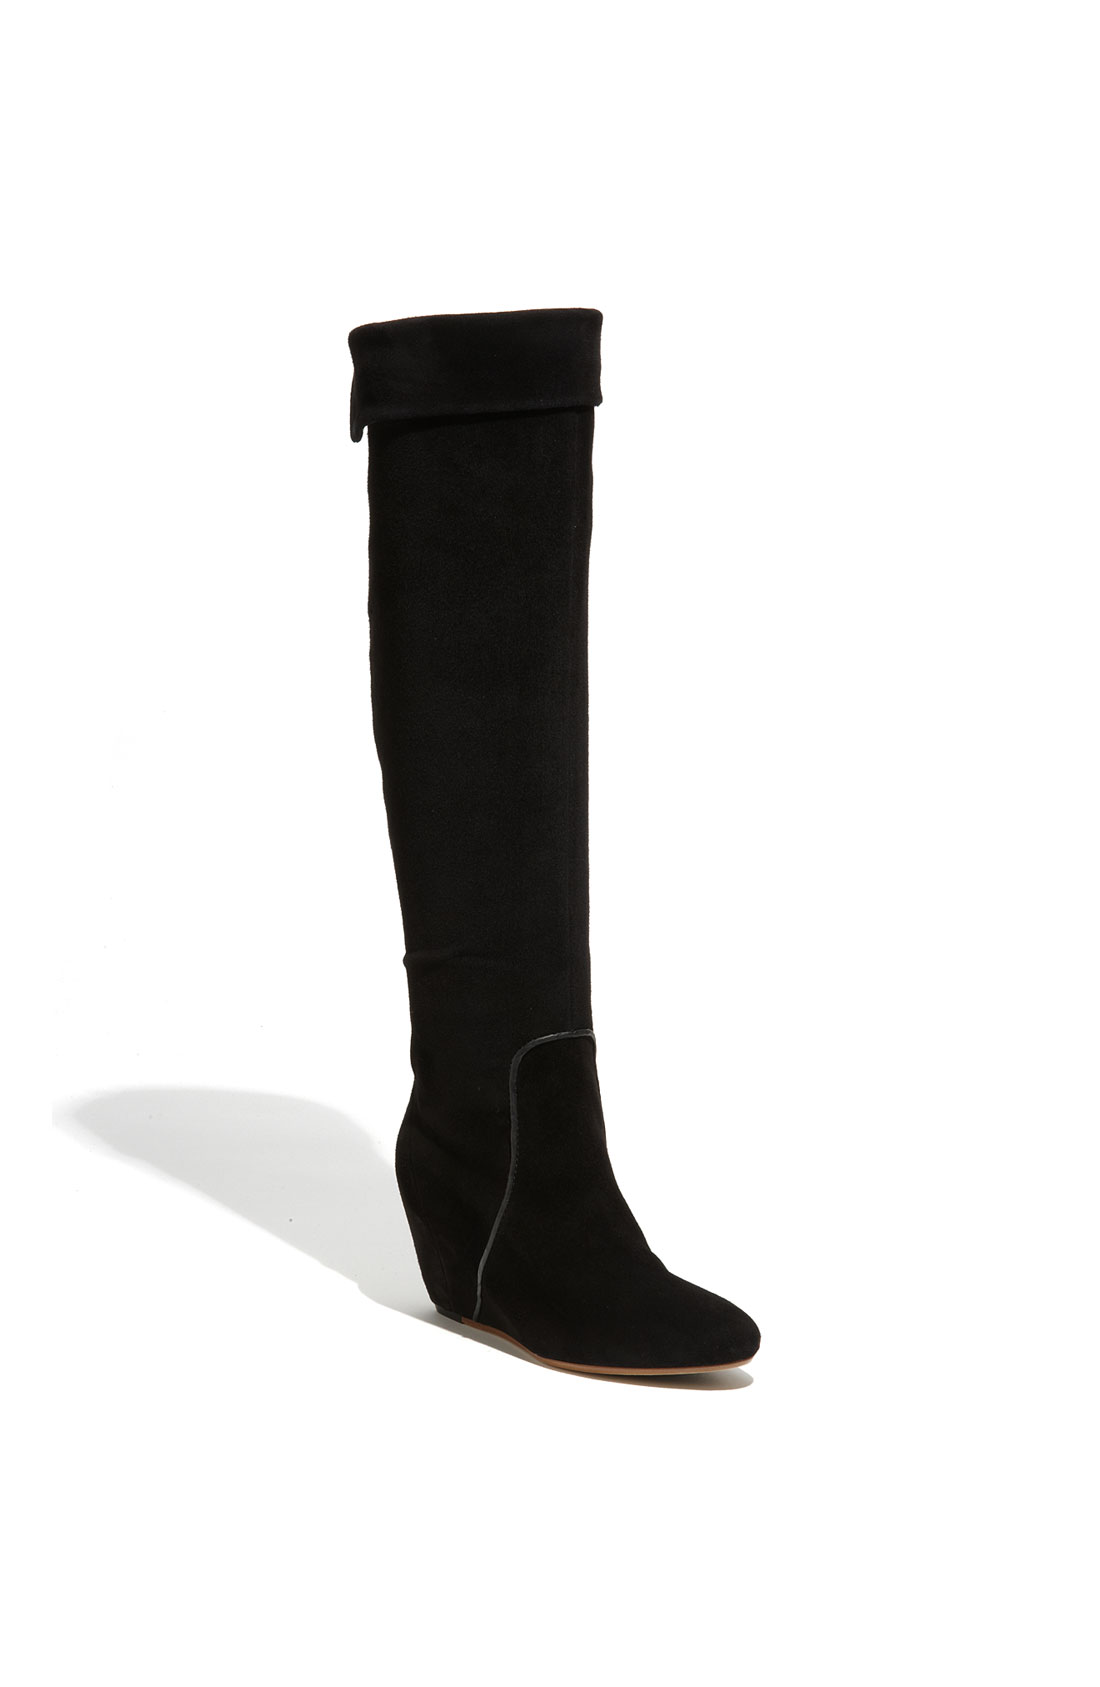 kors by michael kors suede wedge boots in black lyst